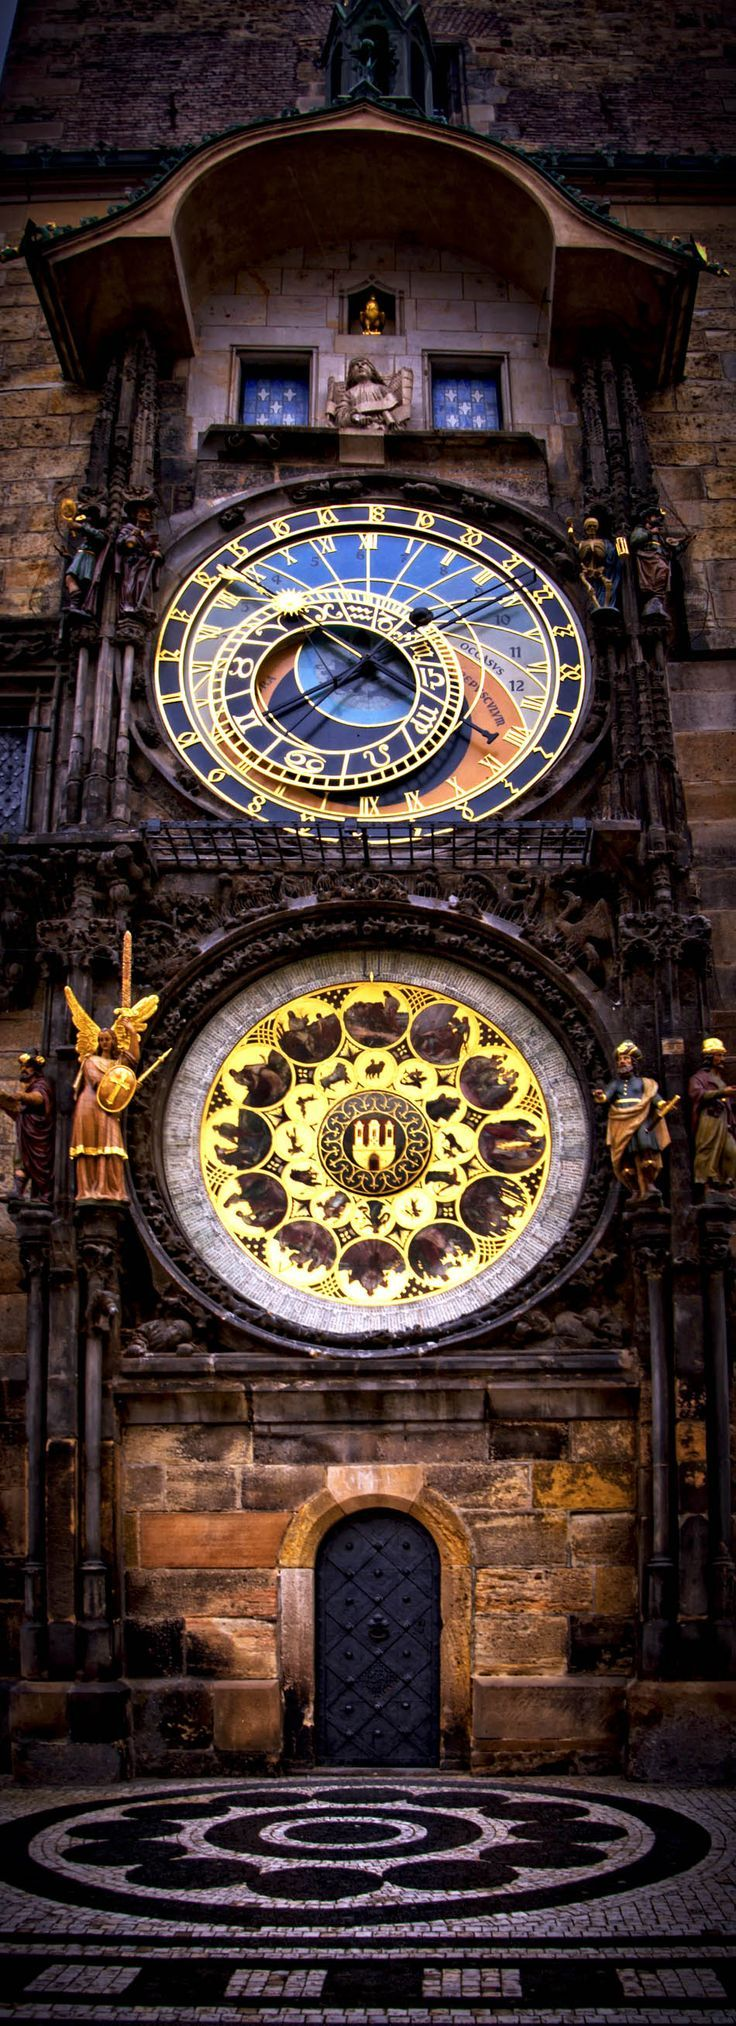 The Prague Astronomical Clock or Prague Orloj. The Orloj is mounted on the southern wall of Old Town City Hall in the Old Town Square and is a popular tourist attraction. Czech Republic. | 22 Reasons why Czech Republic must be in the Top of your Bucket List: